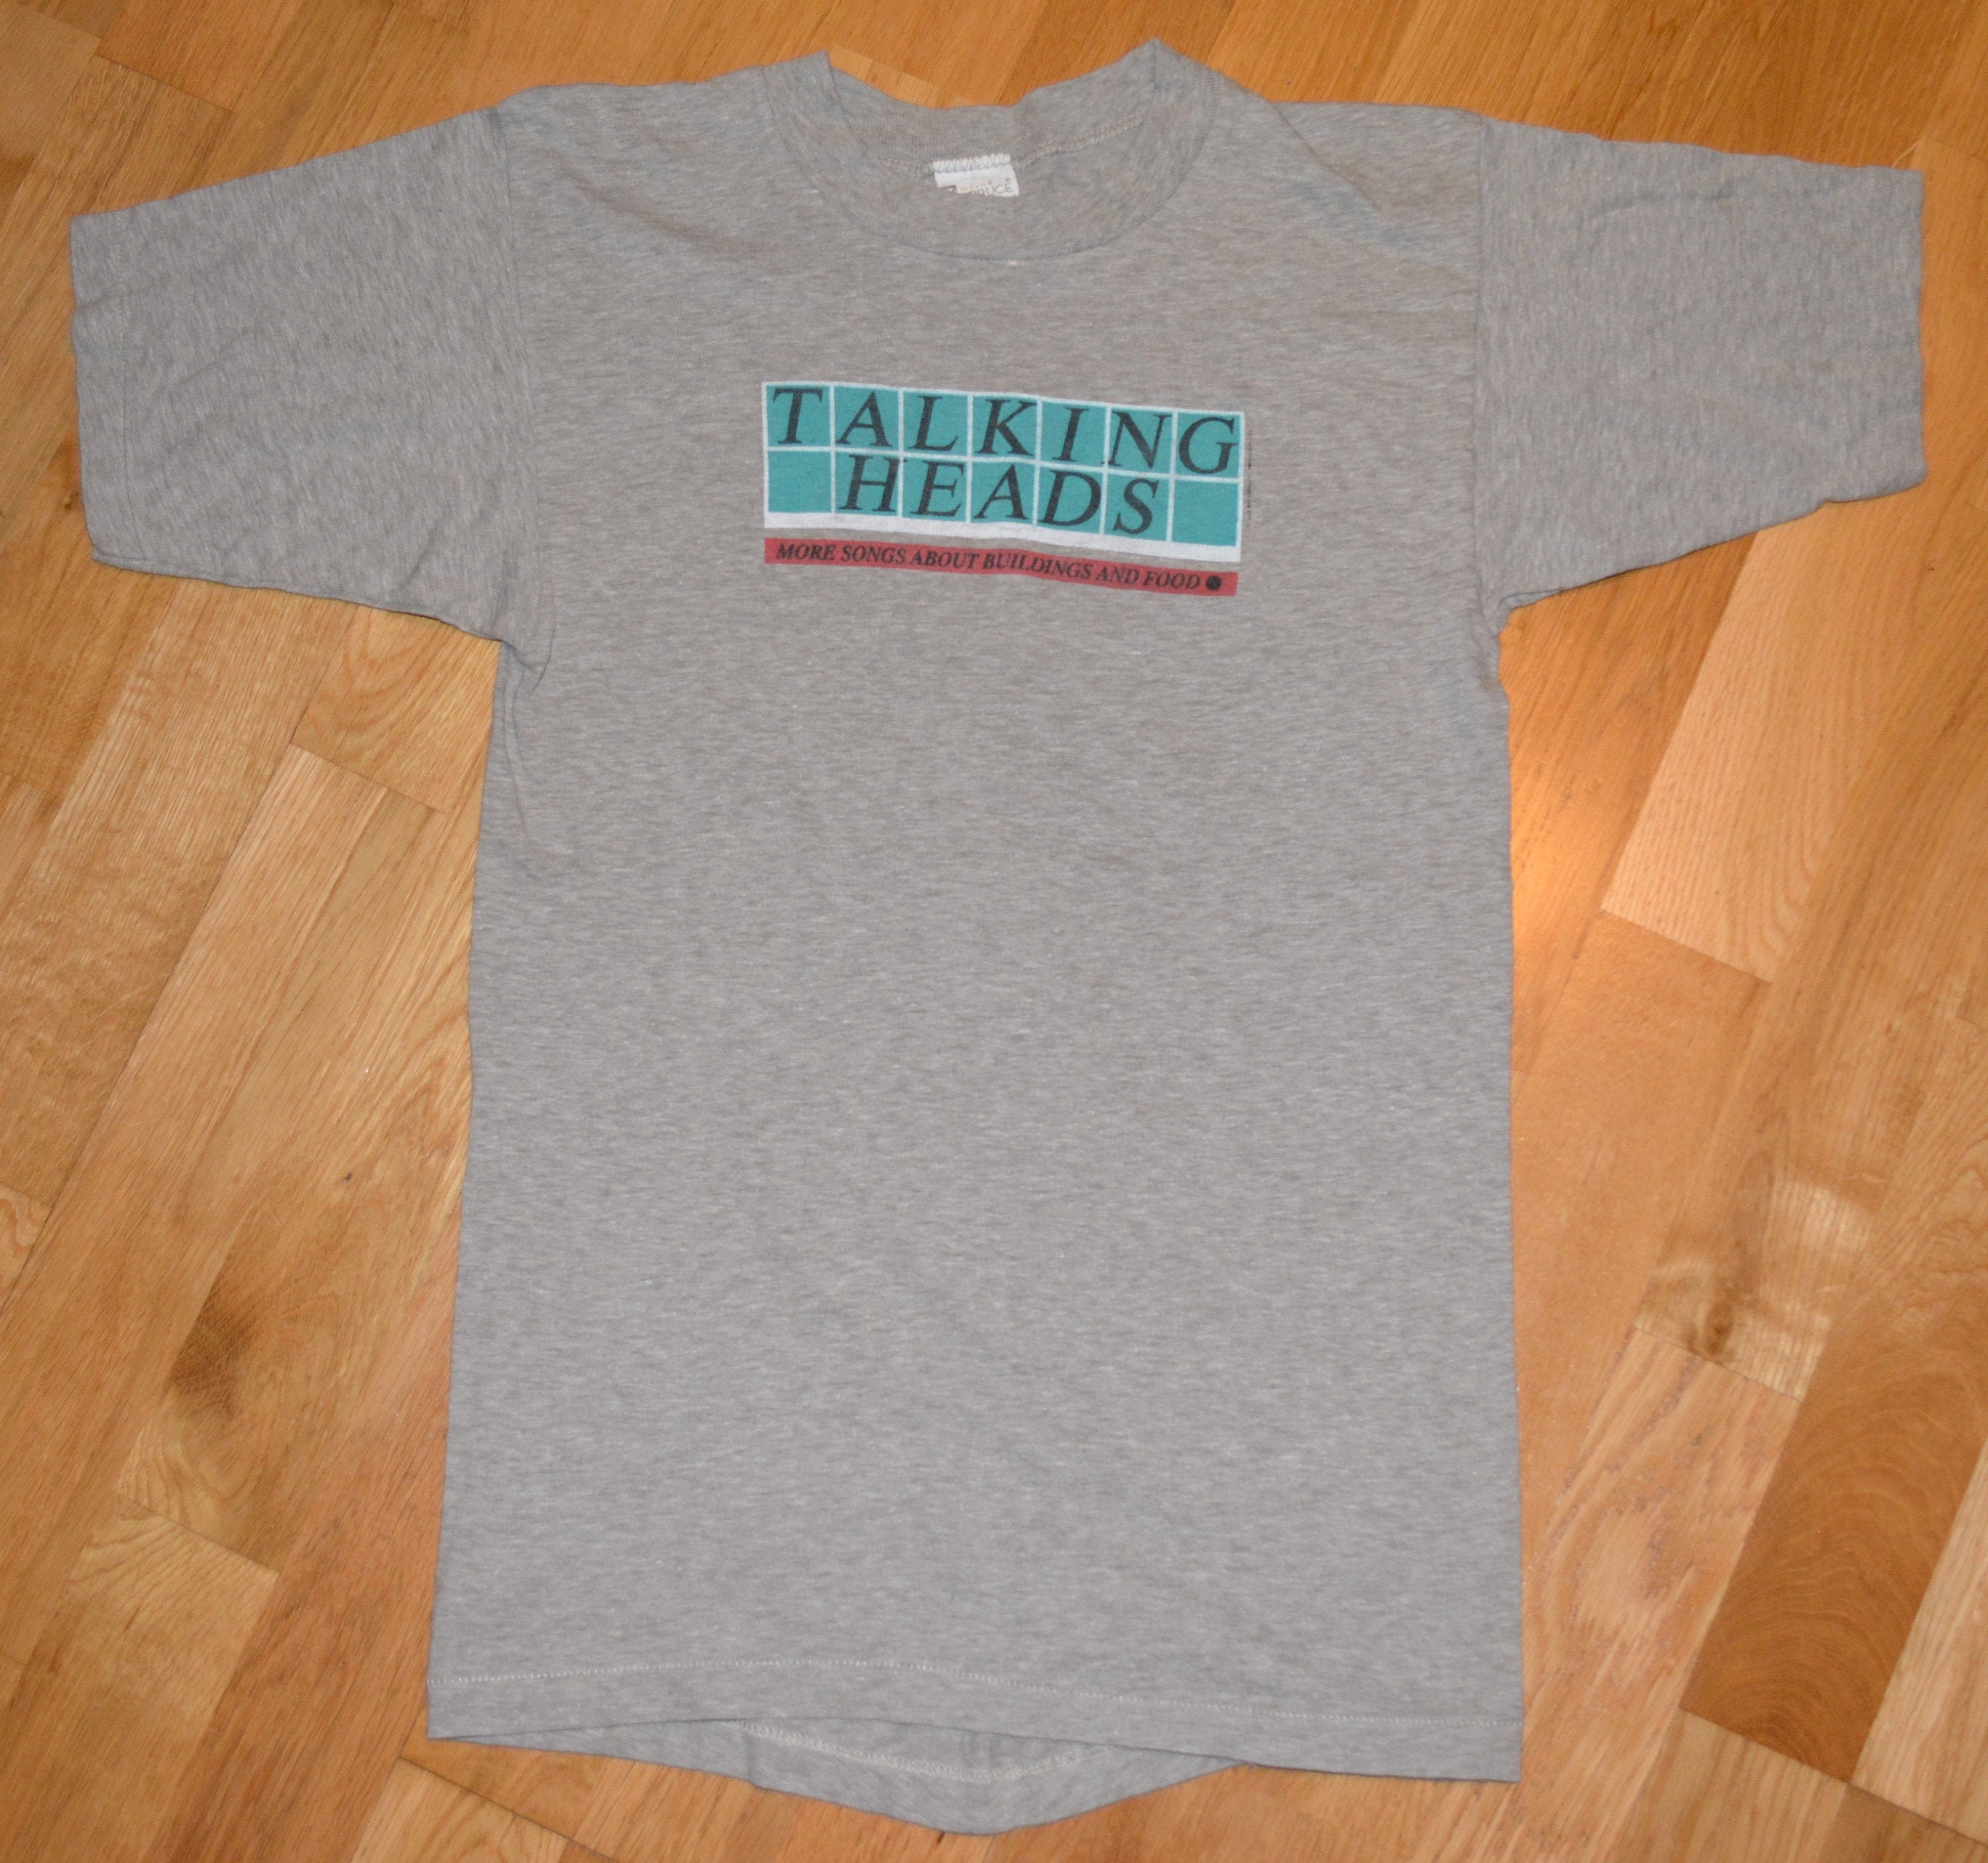 1970s Mens Shirt Styles – Vintage 70s Shirts for Guys 1978 Talking Heads Vintage Rare 1970s Nyc Punk-Rock Concert Tour Original Gray Tee T-Shirt  S Small Mens Unisex Tshirt Gift 70s The $25.00 AT vintagedancer.com